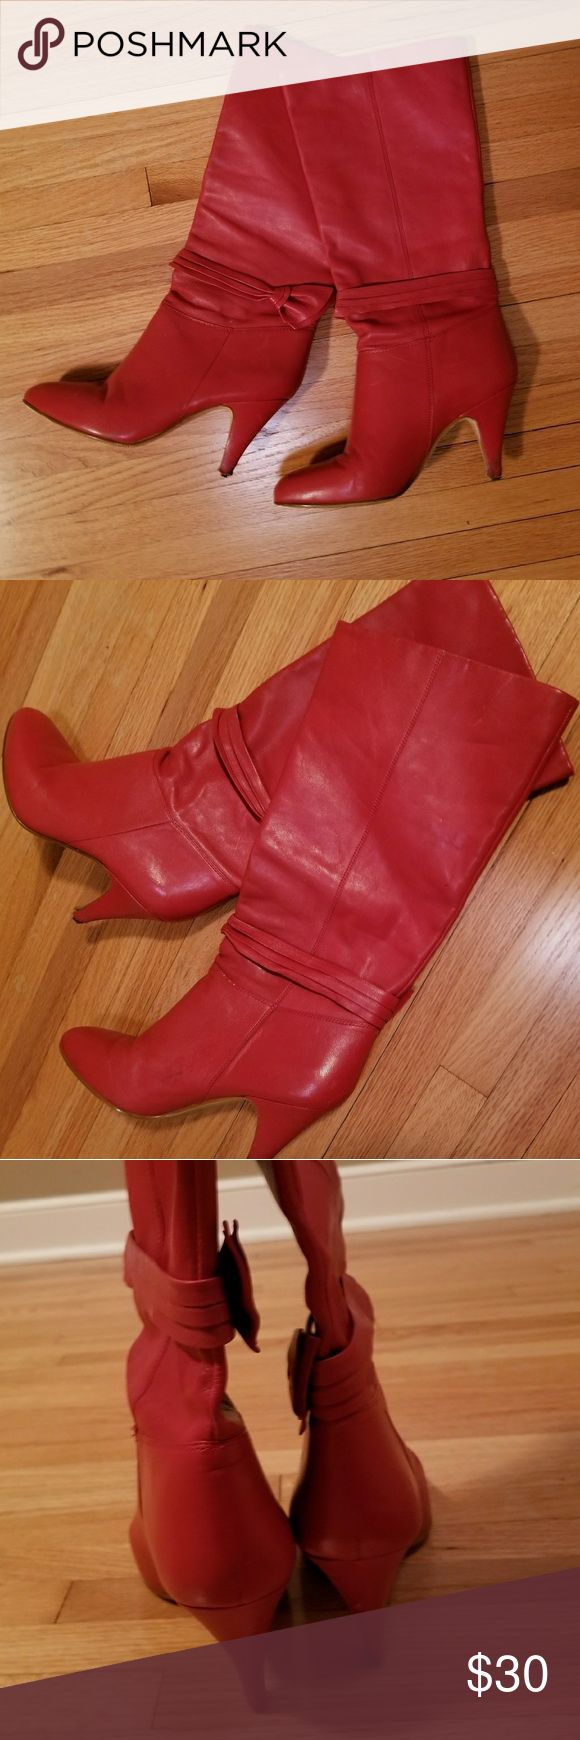 Bright red heeled boots Wore these for the perfect Cruella Deville costume. Leat…